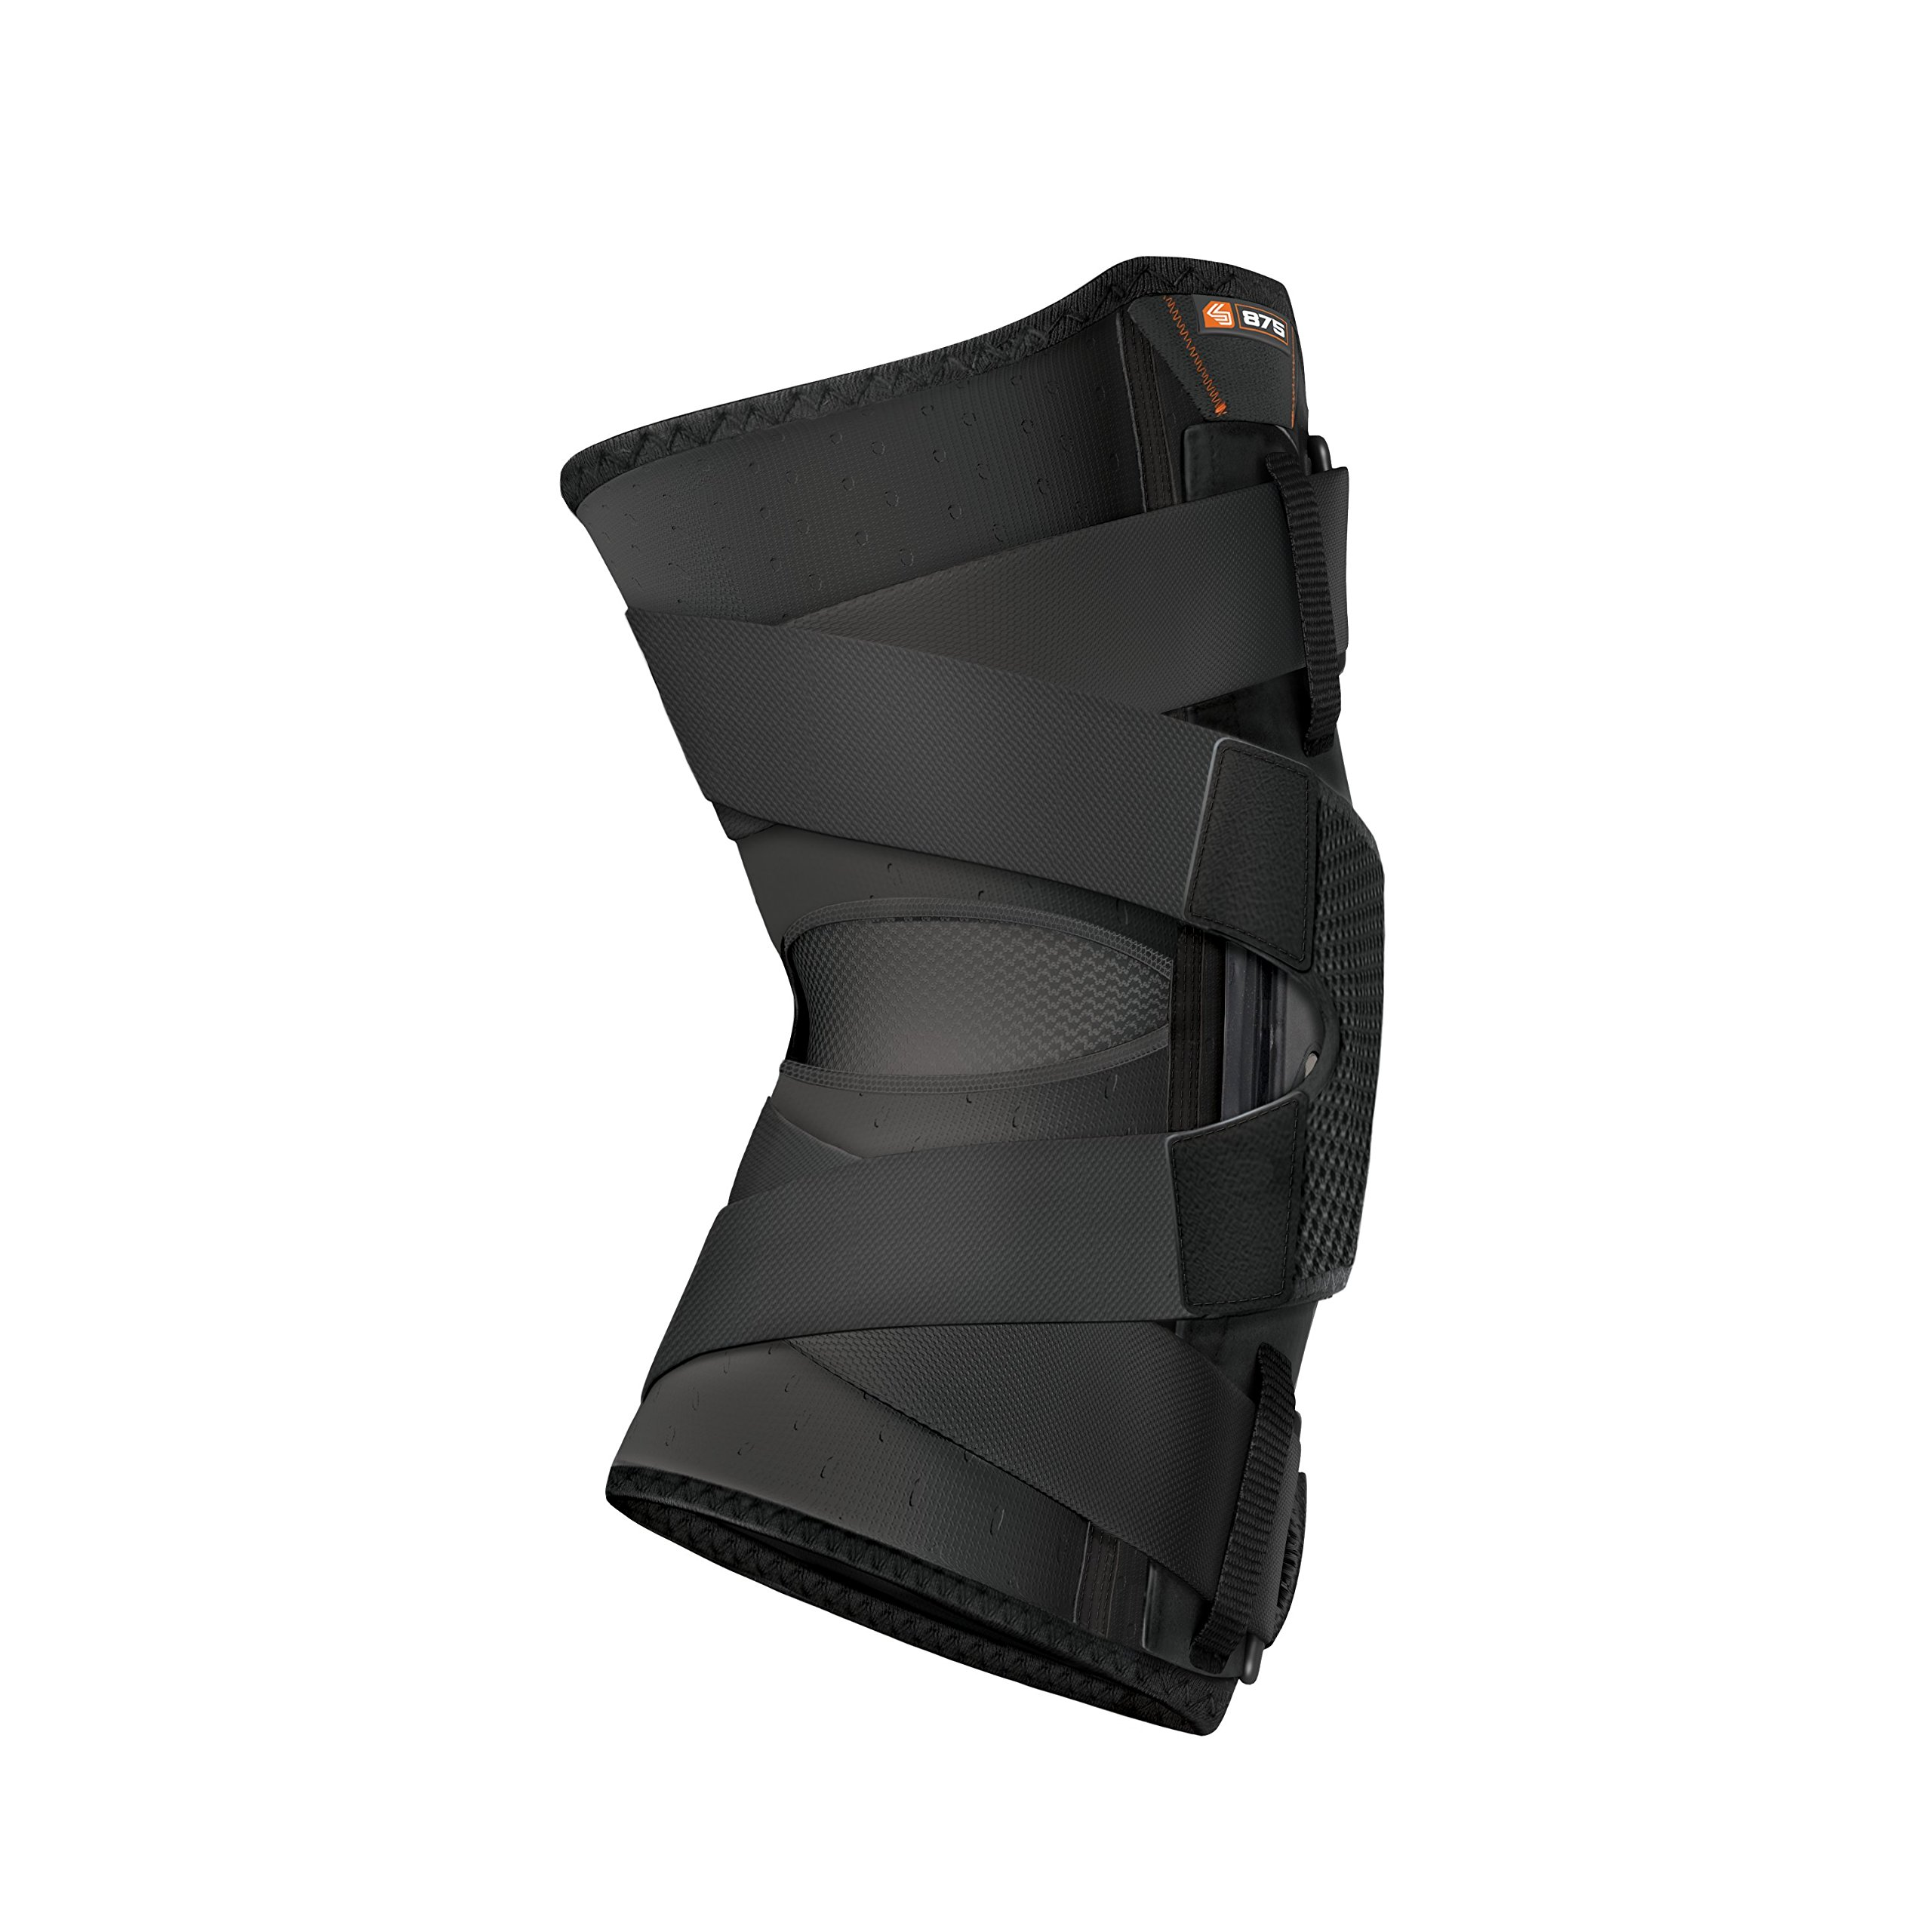 Hinged Knee Brace: Shock Doctor Maximum Support Compression Knee Brace - For ACL/PCL Injuries, Patella Support, Sprains, Hypertension and More for Men and Women - (1 Knee Brace, Large) by Shock Doctor (Image #2)